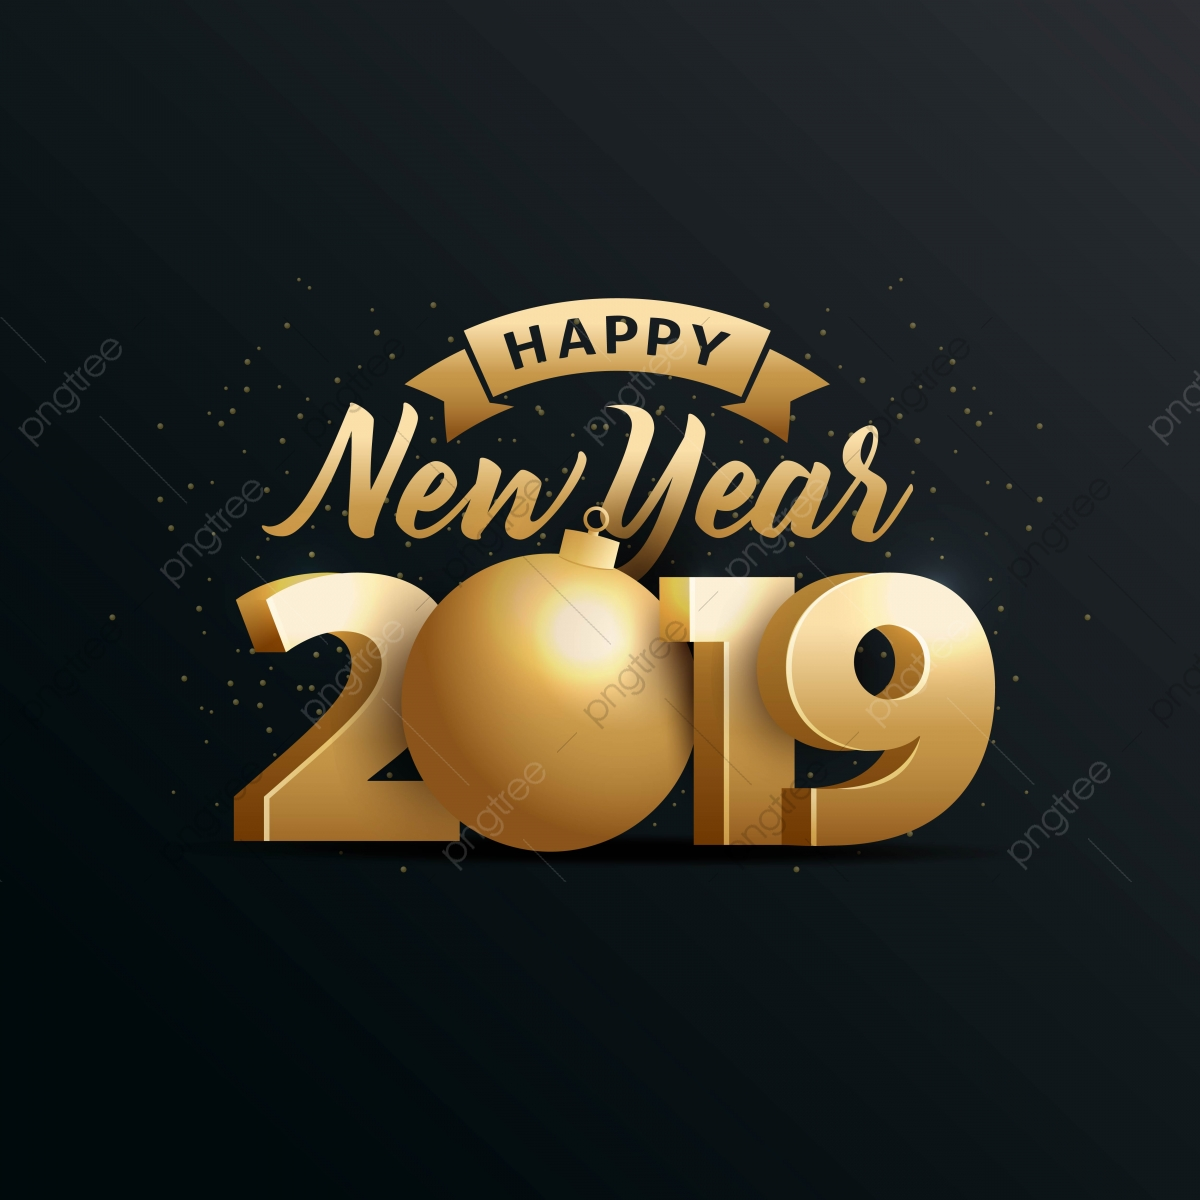 Happy Year 2019 With Gold 3d Happy Background Gold Png And Vector With Transparent Background For Free Download Download now the free icon pack 'happy new year'. https pngtree com freepng happy year 2019 with gold 3d 3689484 html